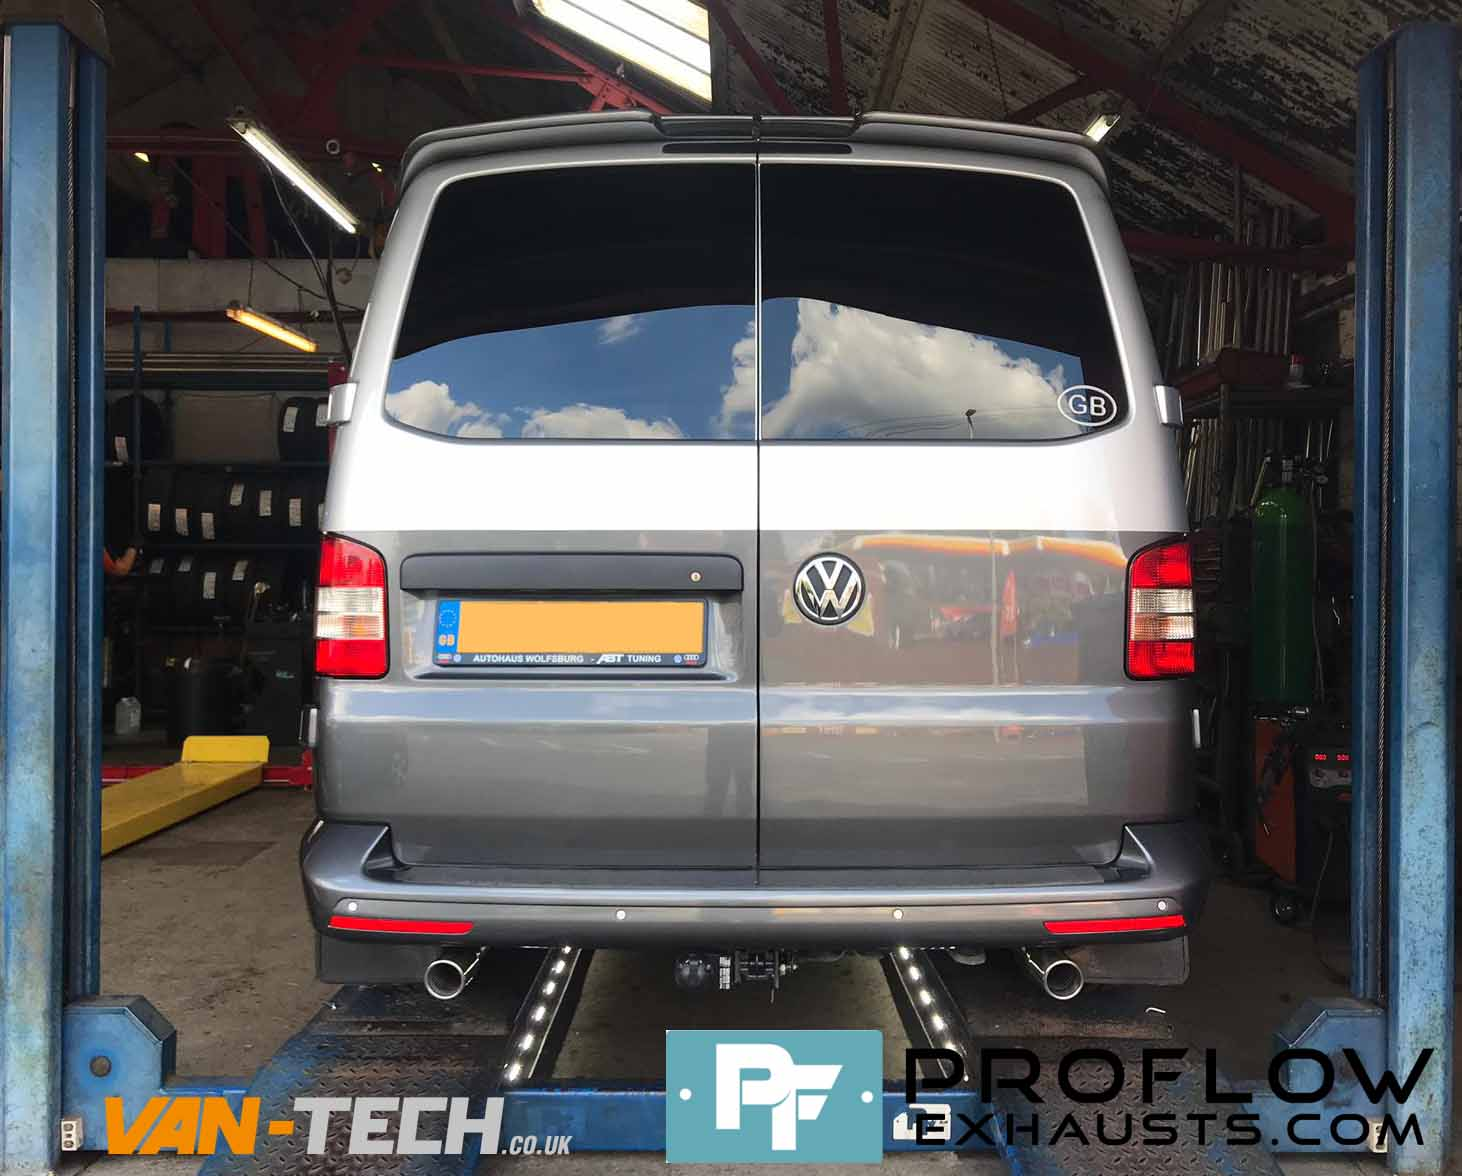 Proflow Custom Stainless Steel Exhaust For Volkswagen Transporter T5 (2)